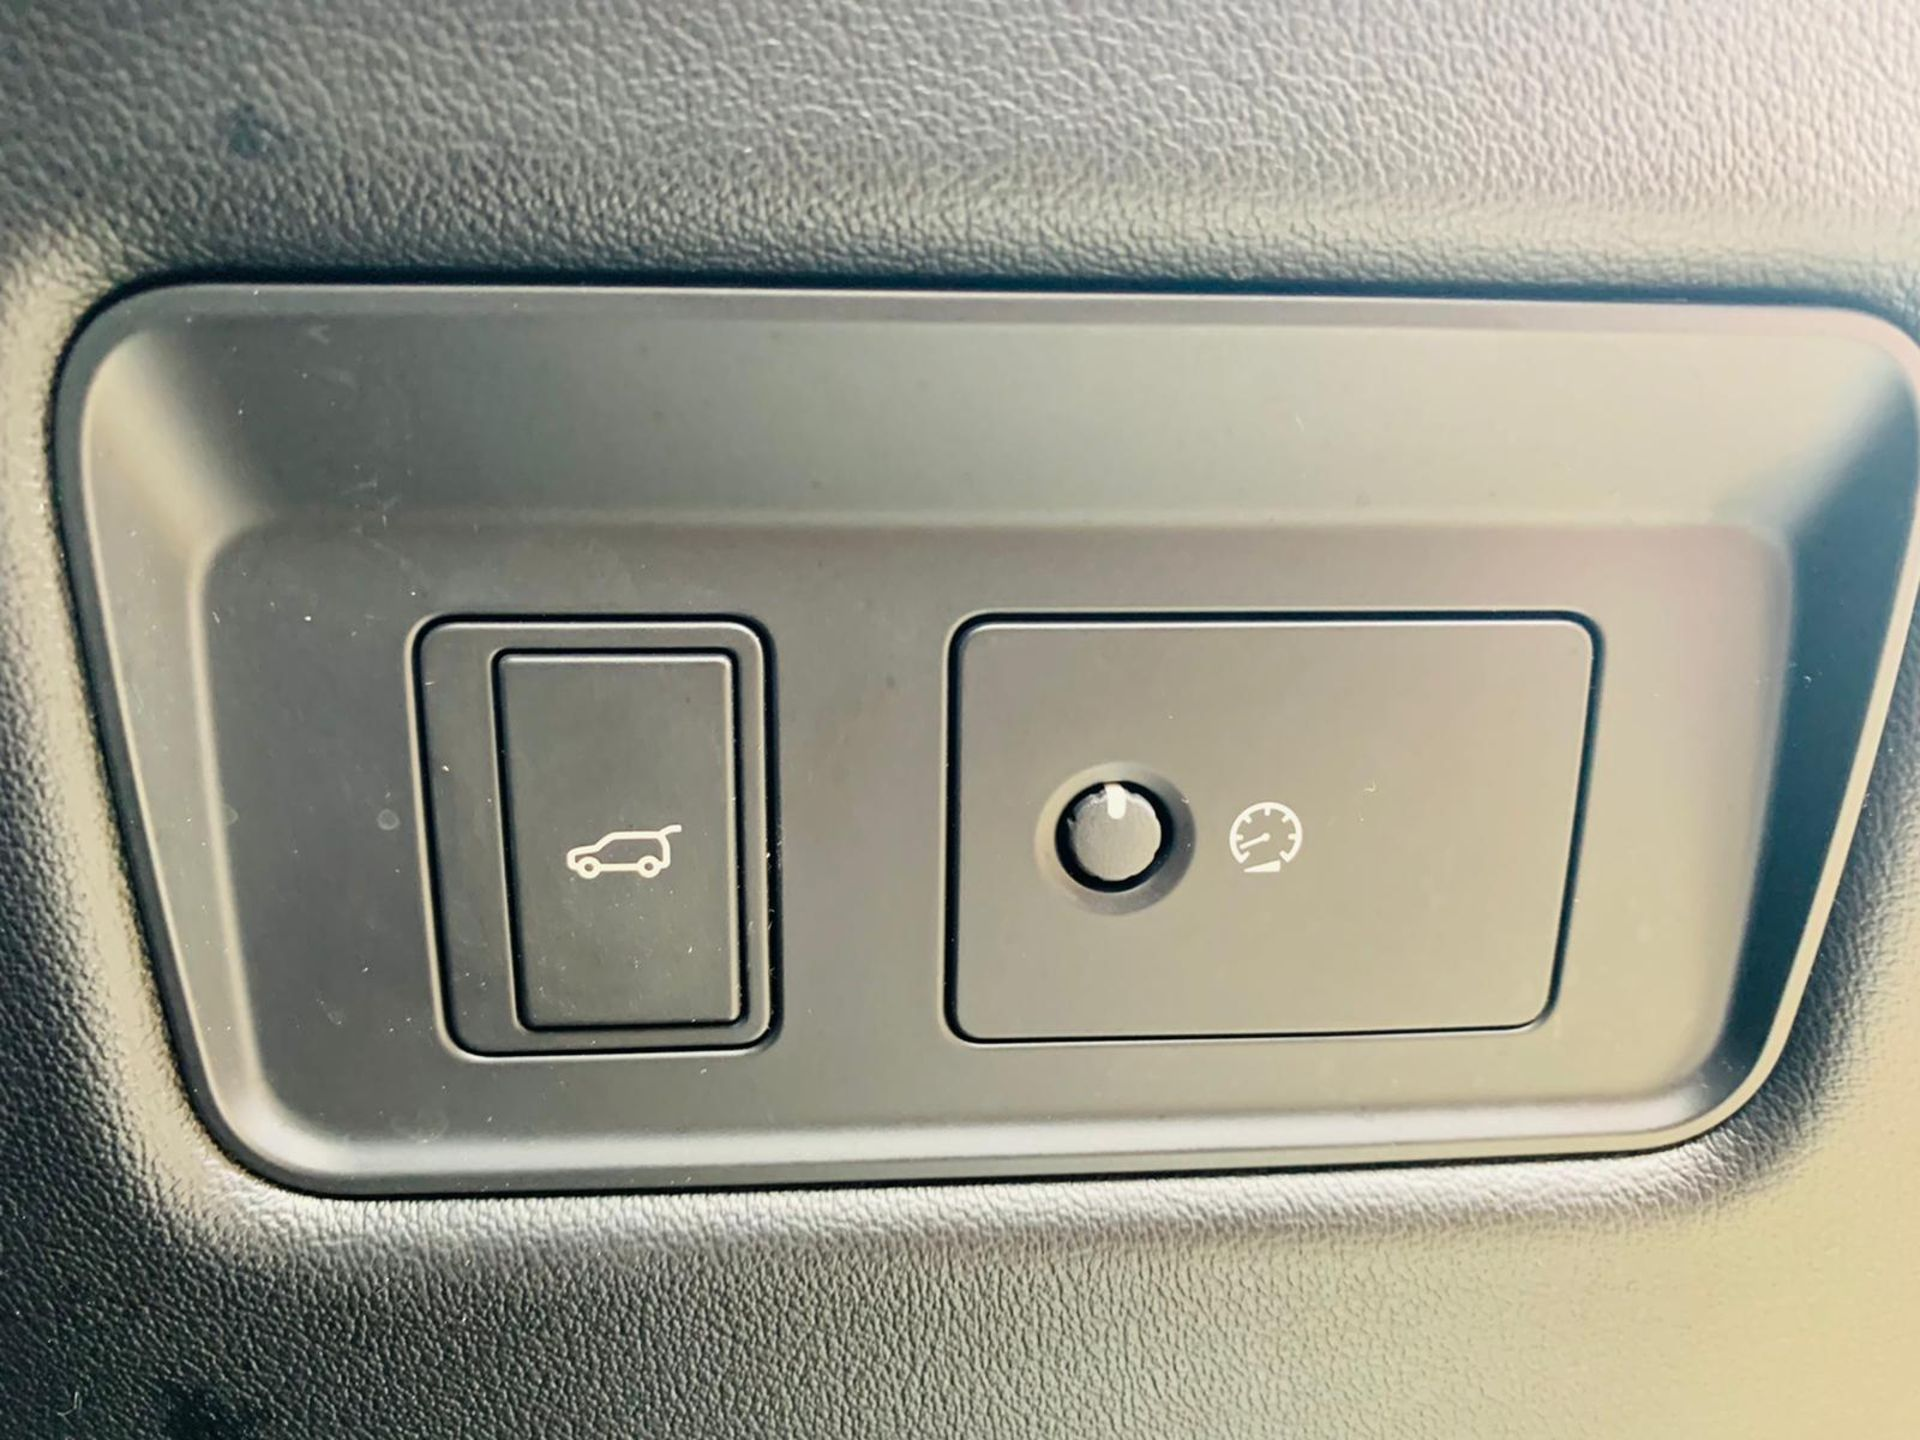 (RESERVE MET) Range Rover Sport 3.0 SDV6 HSE Auto - 2019 - 1 Keeper From New - Virtual Cockpit - - Image 35 of 42